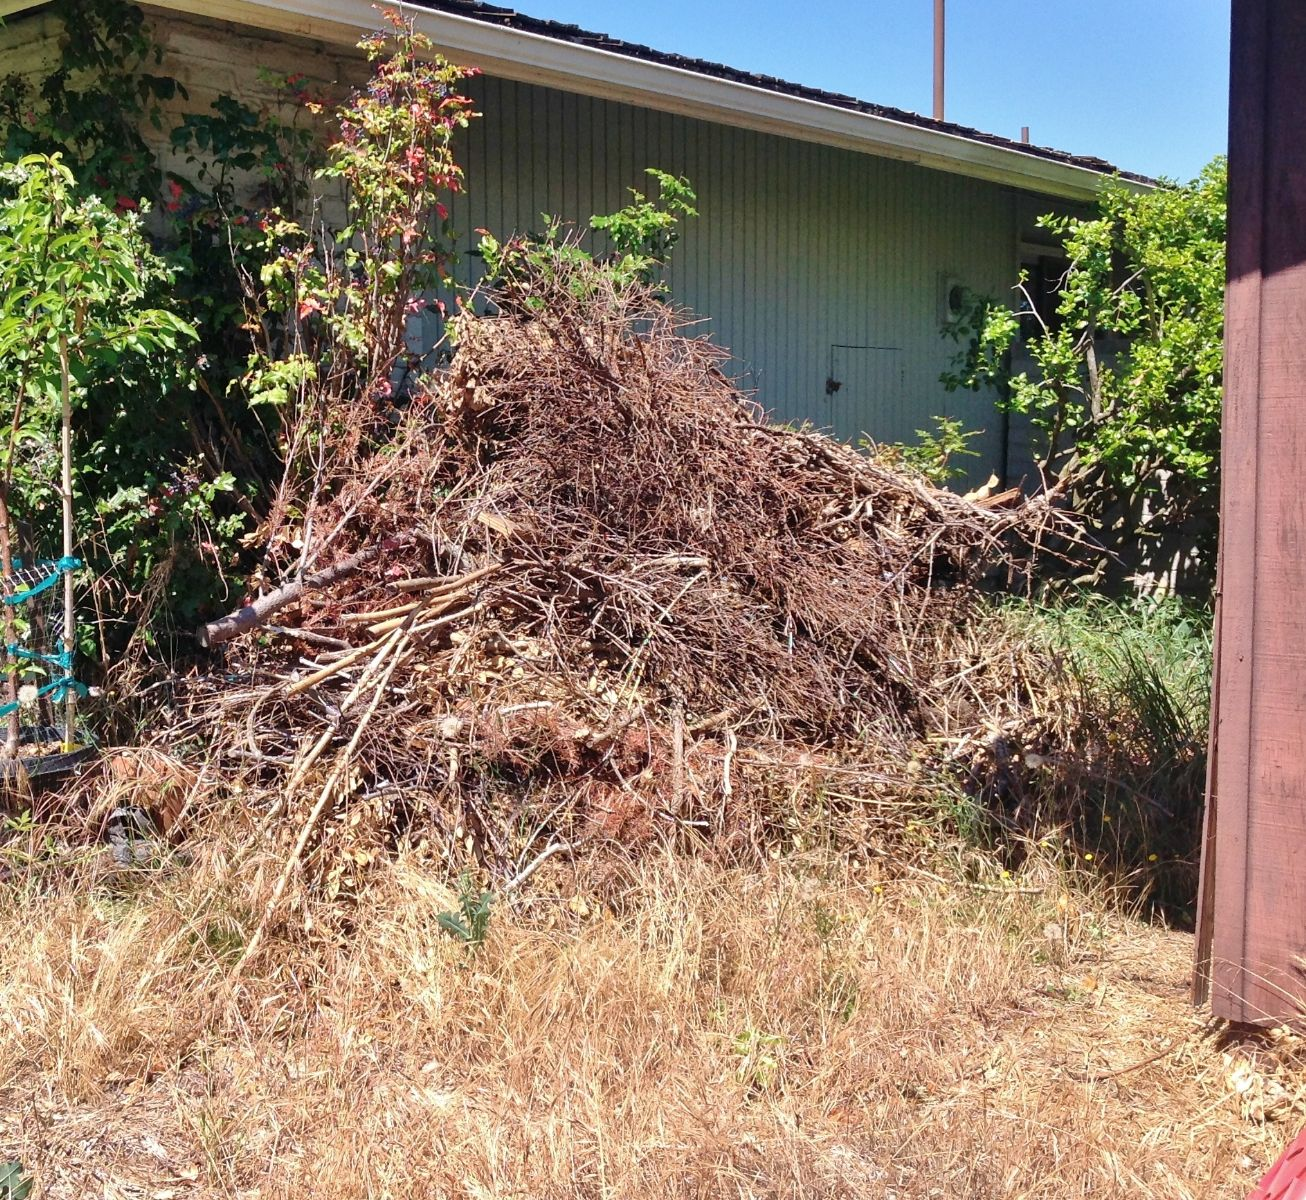 Yard Debris is extra fuel for a wildfire